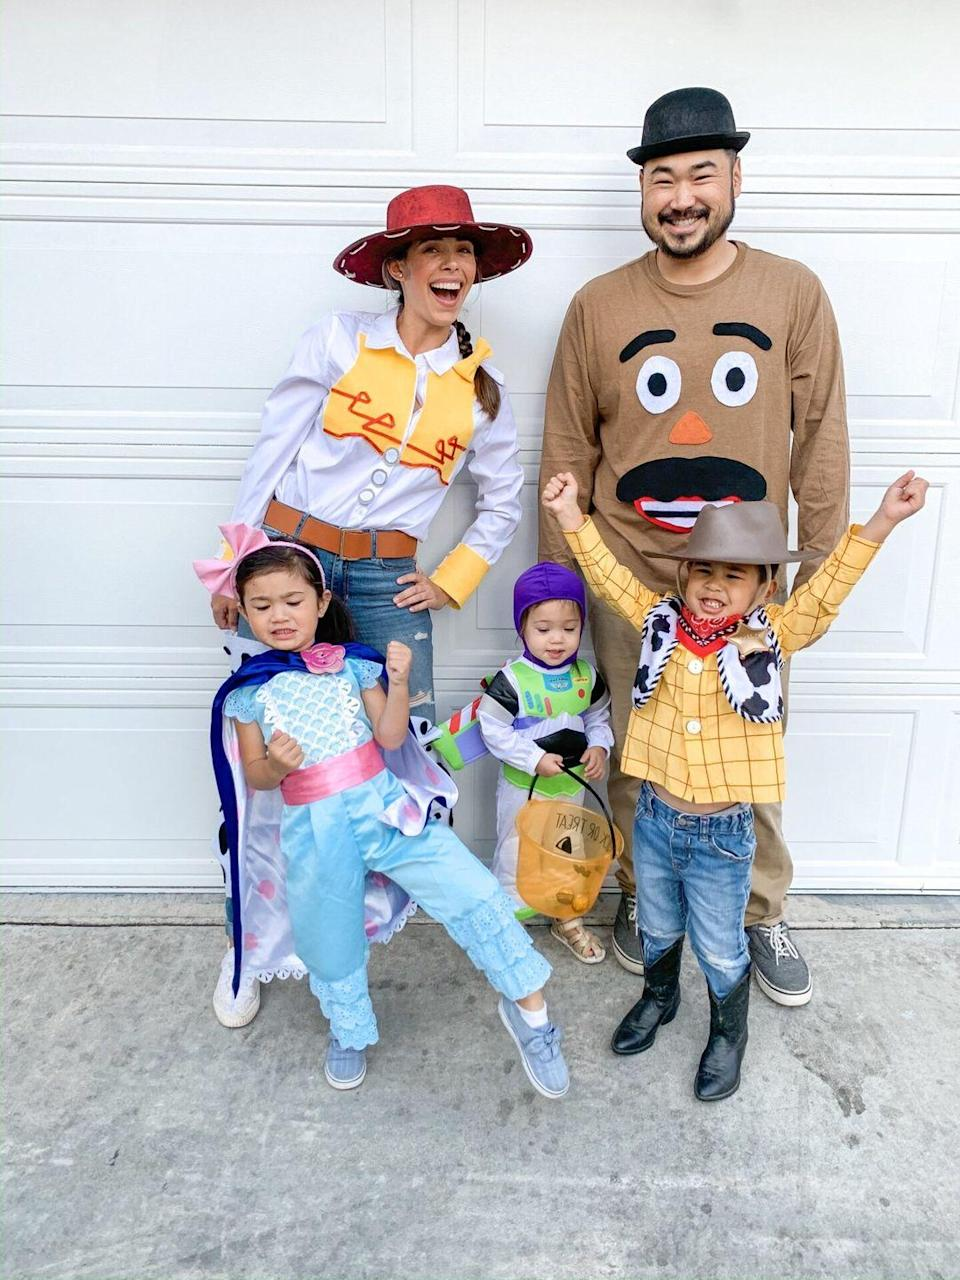 """<p>To infinity and beyond! Get the whole family involved with these fun <em><a href=""""http://somekindamama.com/is-halloween-cancelled-nope/"""" rel=""""nofollow noopener"""" target=""""_blank"""" data-ylk=""""slk:Toy Story"""" class=""""link rapid-noclick-resp"""">Toy Story</a></em> costumes.<br> </p>"""